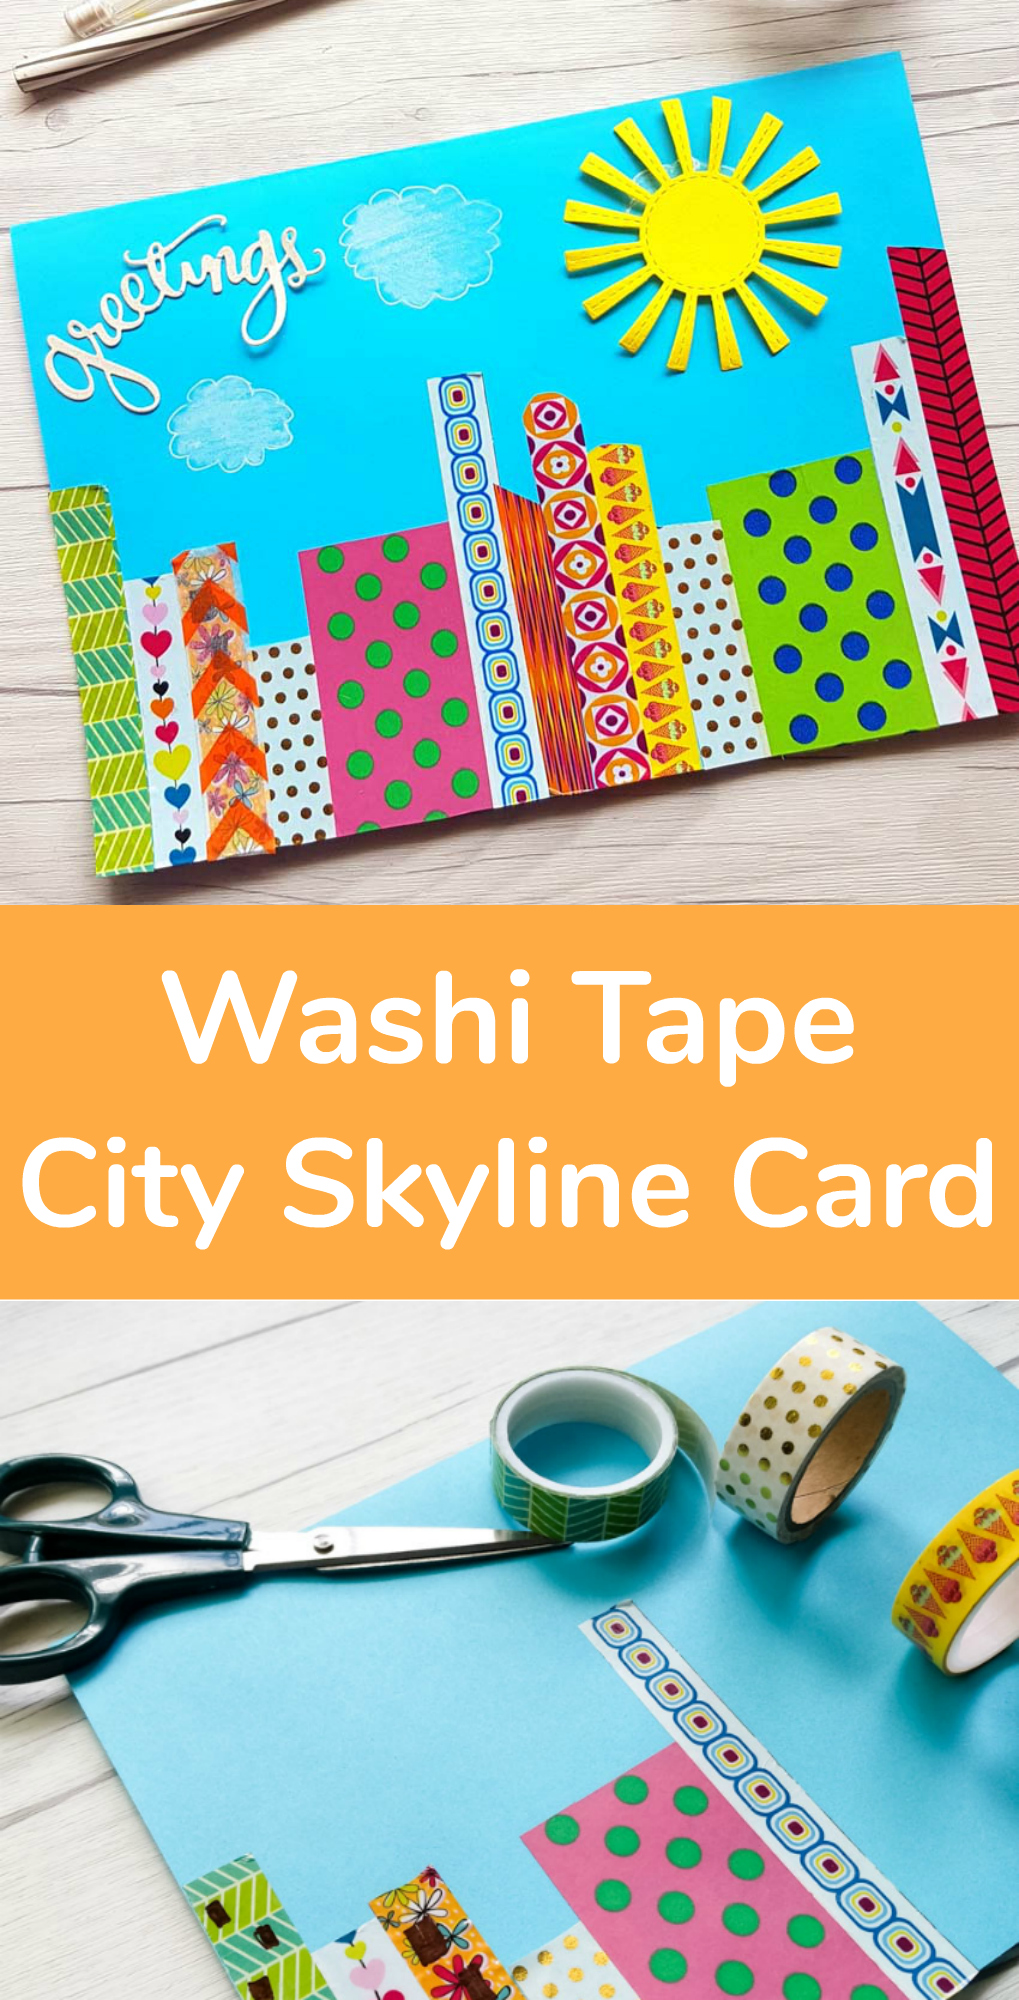 Washi Tape City Skyline Greeting Card